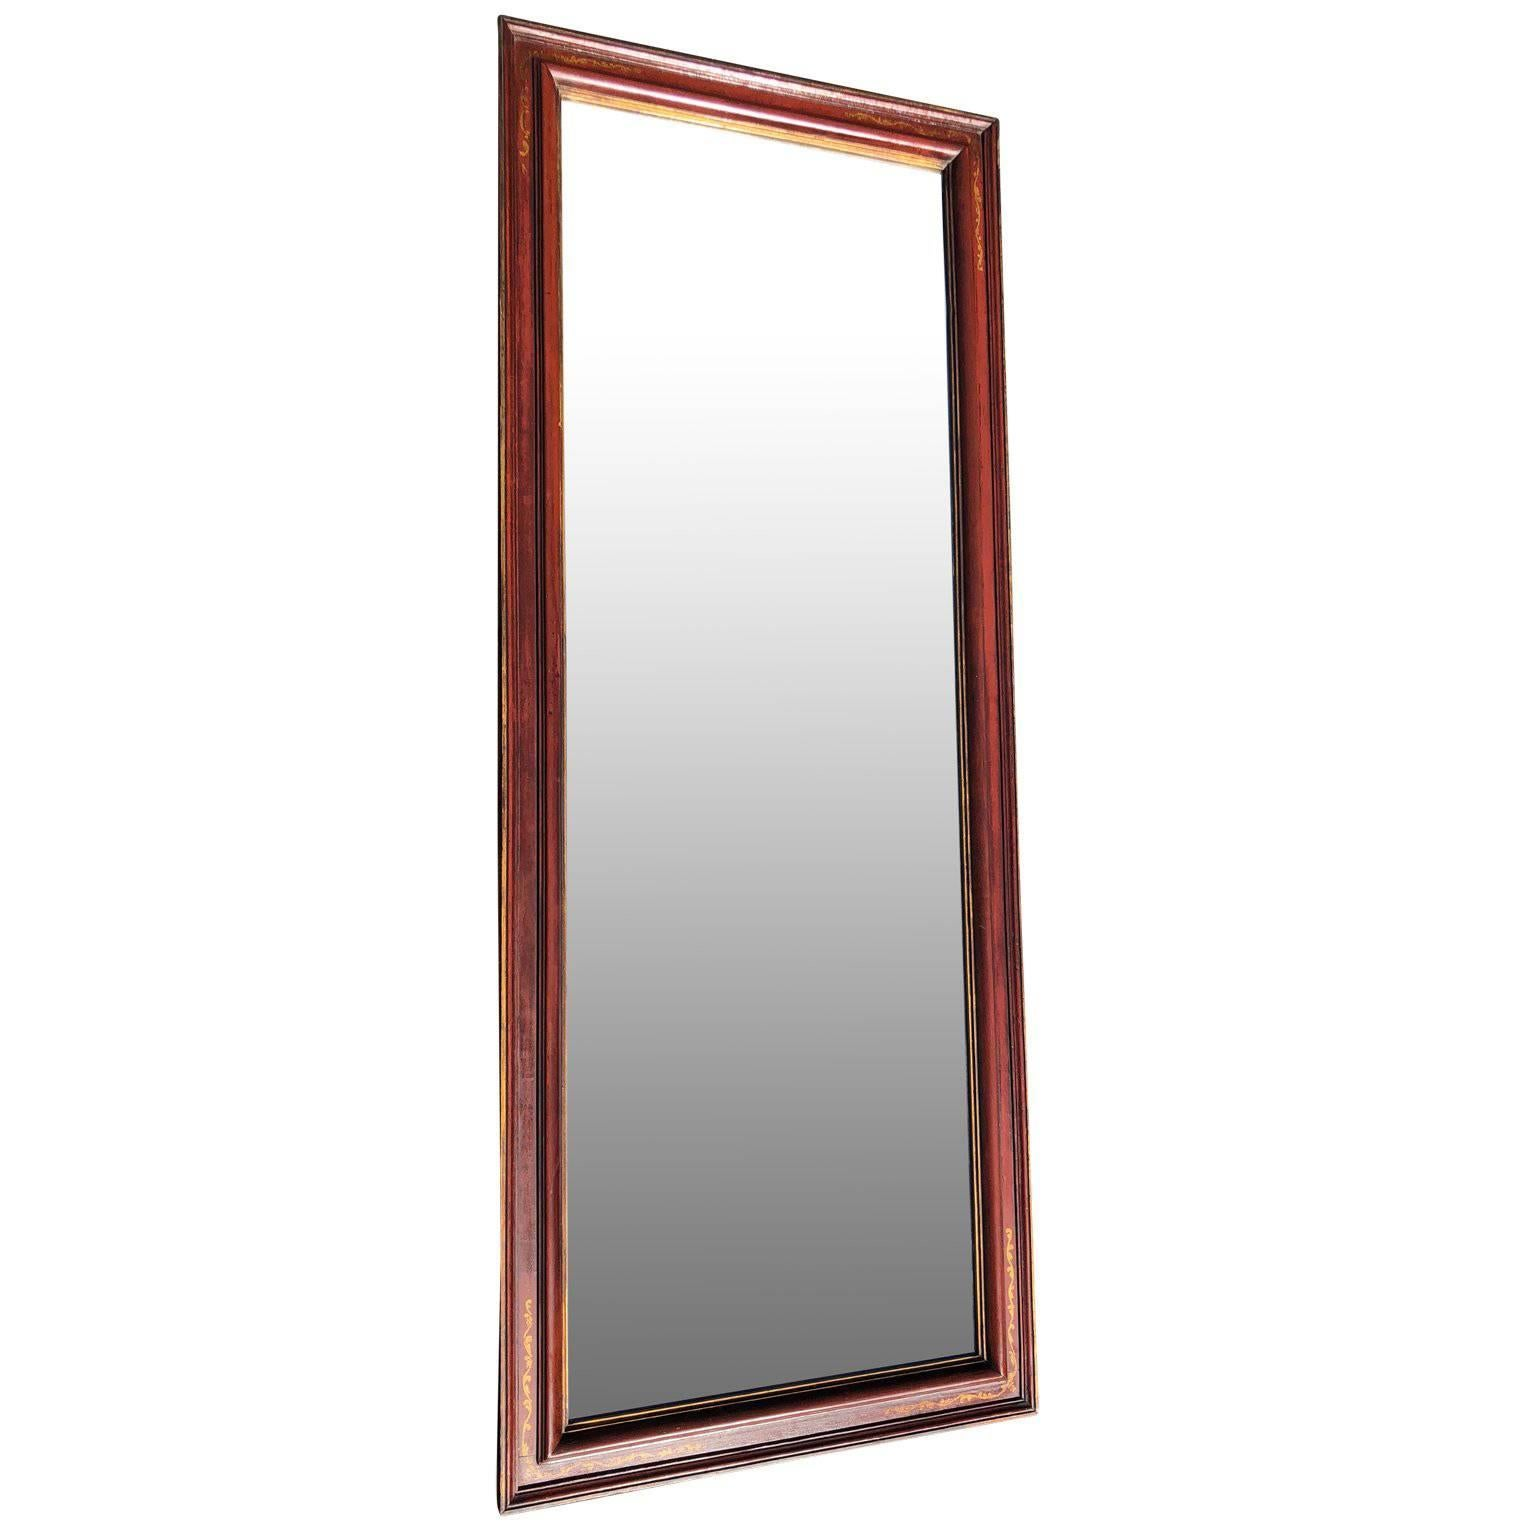 Large Antique Floor Mirror with Bevelled Mirror Glass